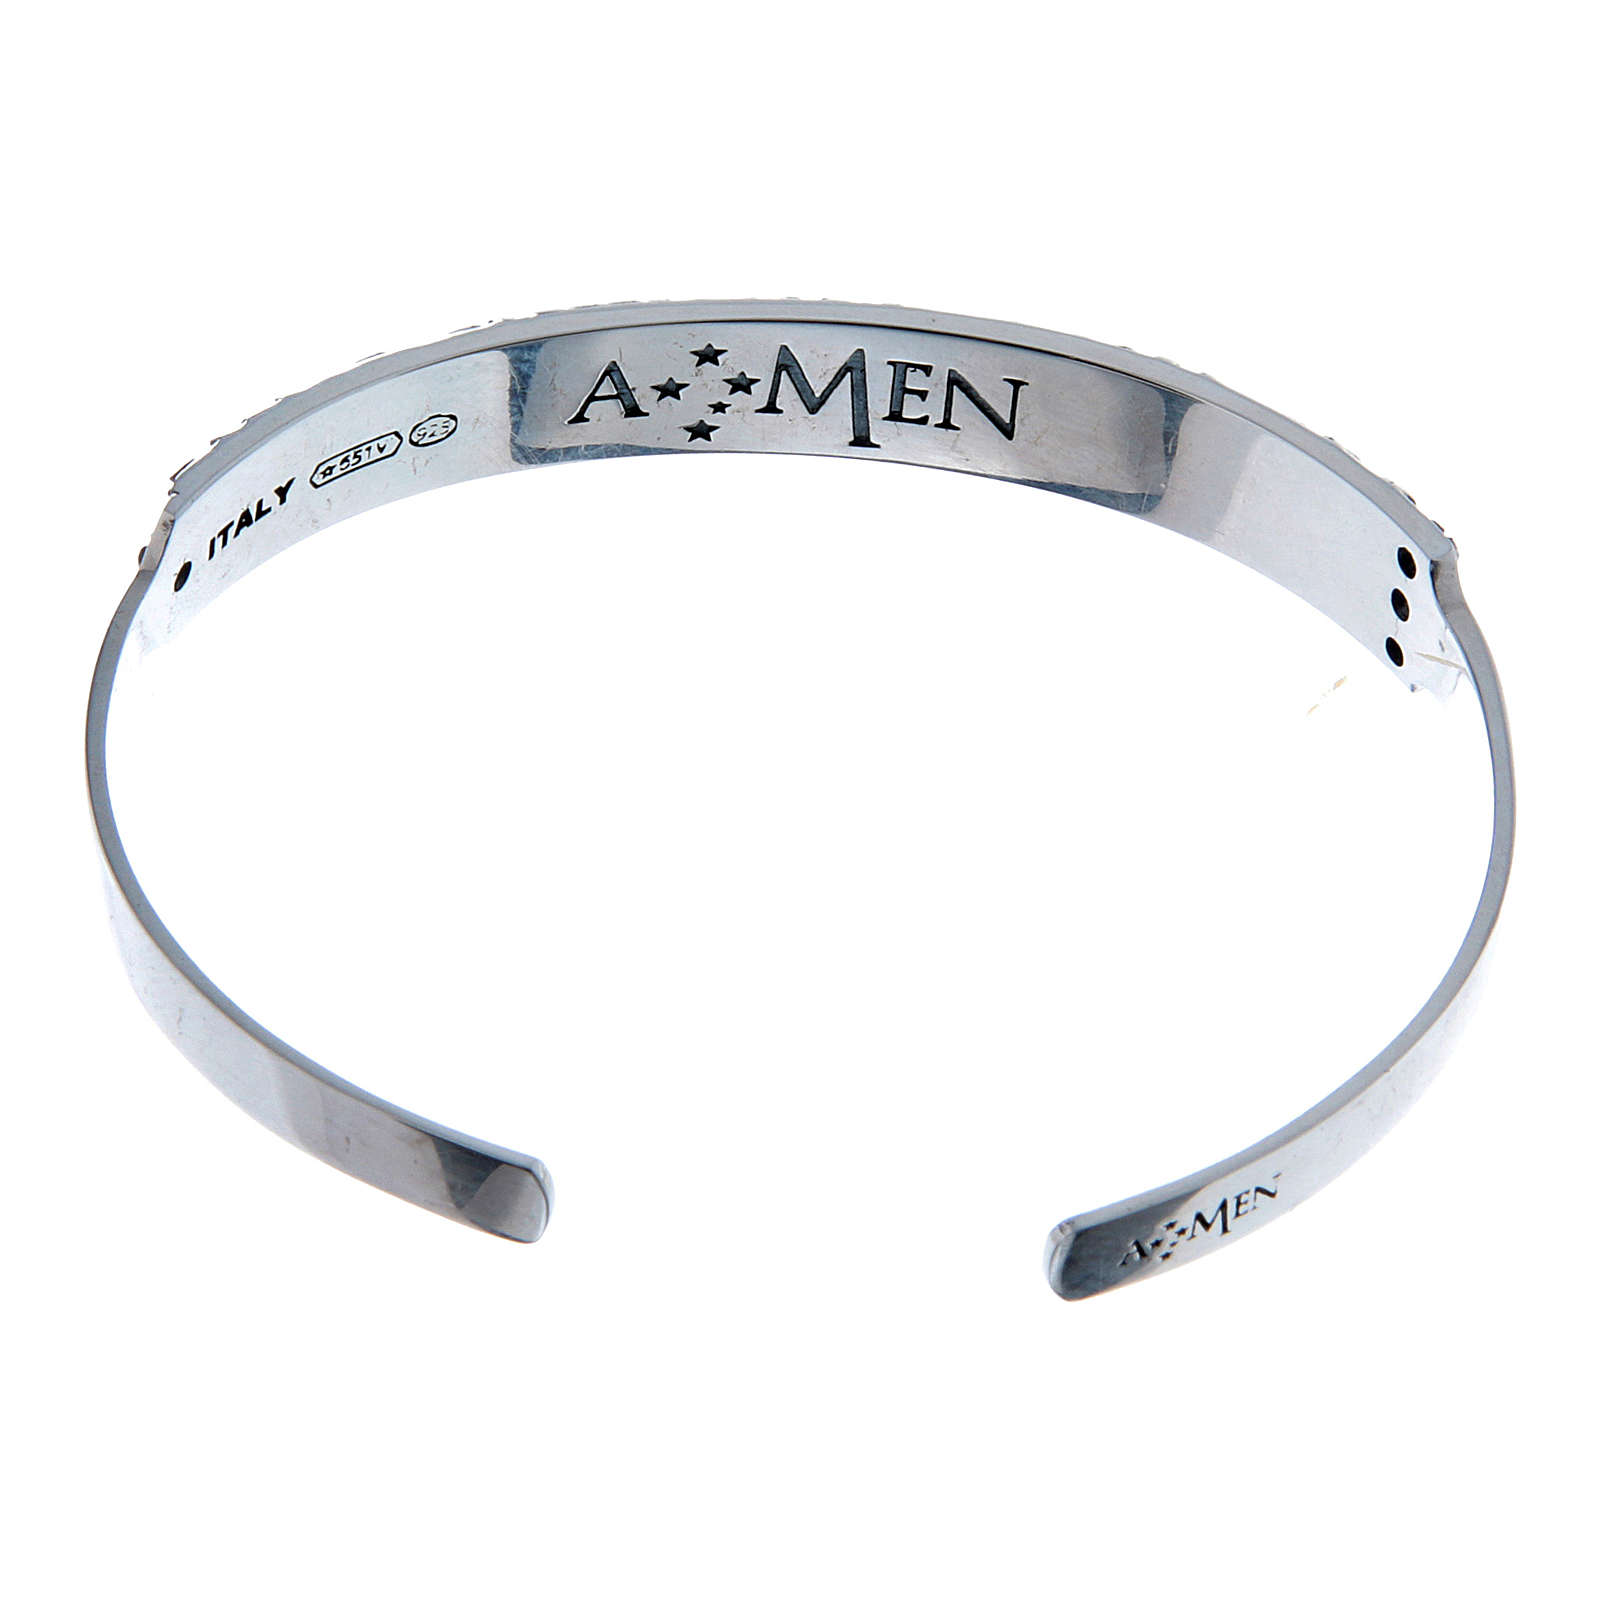 AMEN slave bracelet Our Father in 925 sterling silver 4